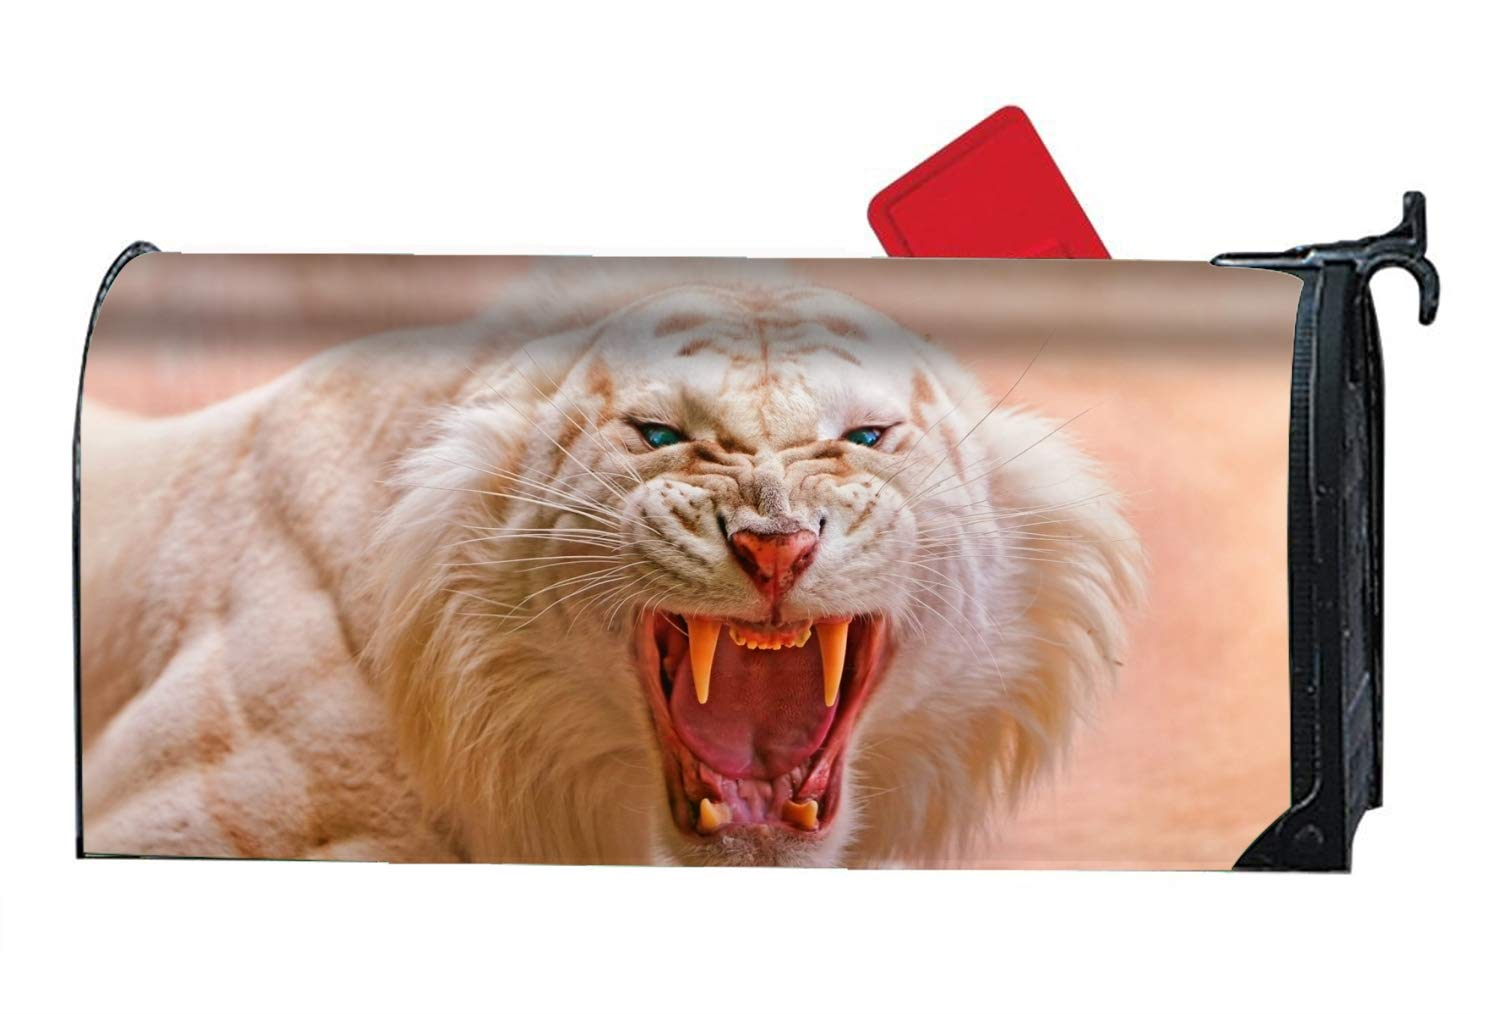 Verna Christopher Animal White Tiger Cats Siberian Albino Cat Printed Mailbox Covers Magnetic Mailbox Makeover